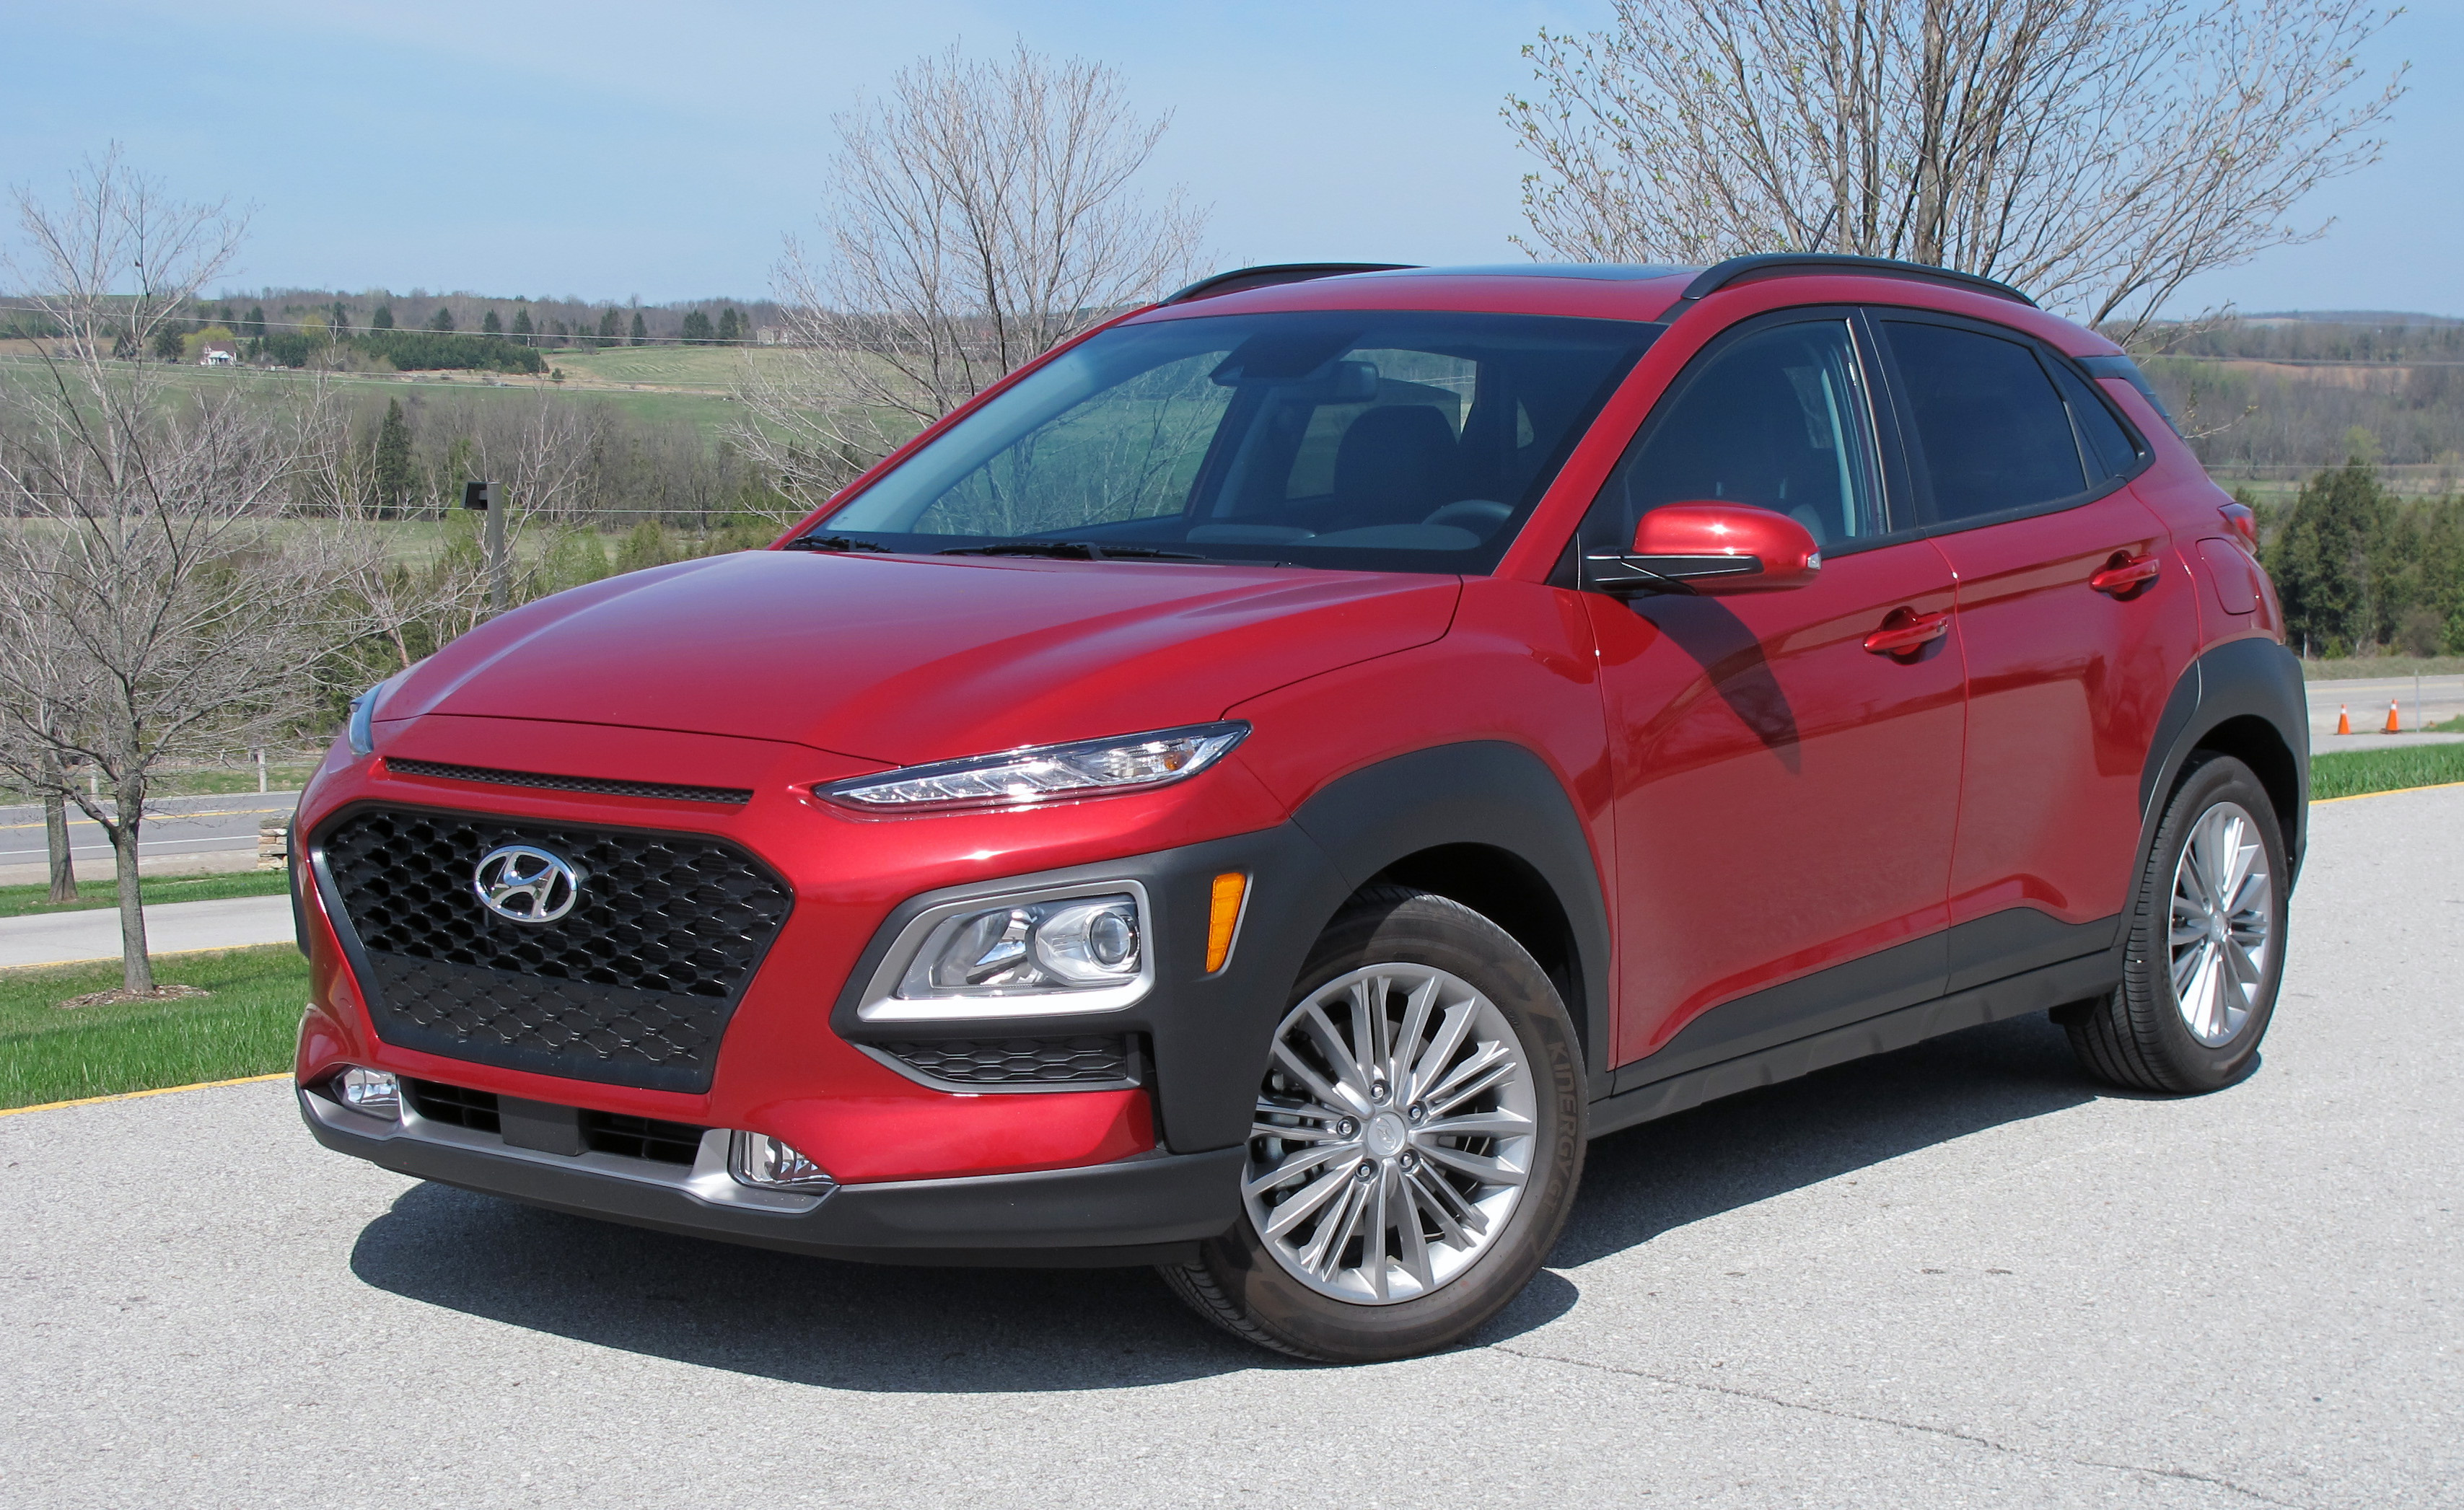 Cuv Car Review 2018 Hyundai Kona Cuv Wheels Ca